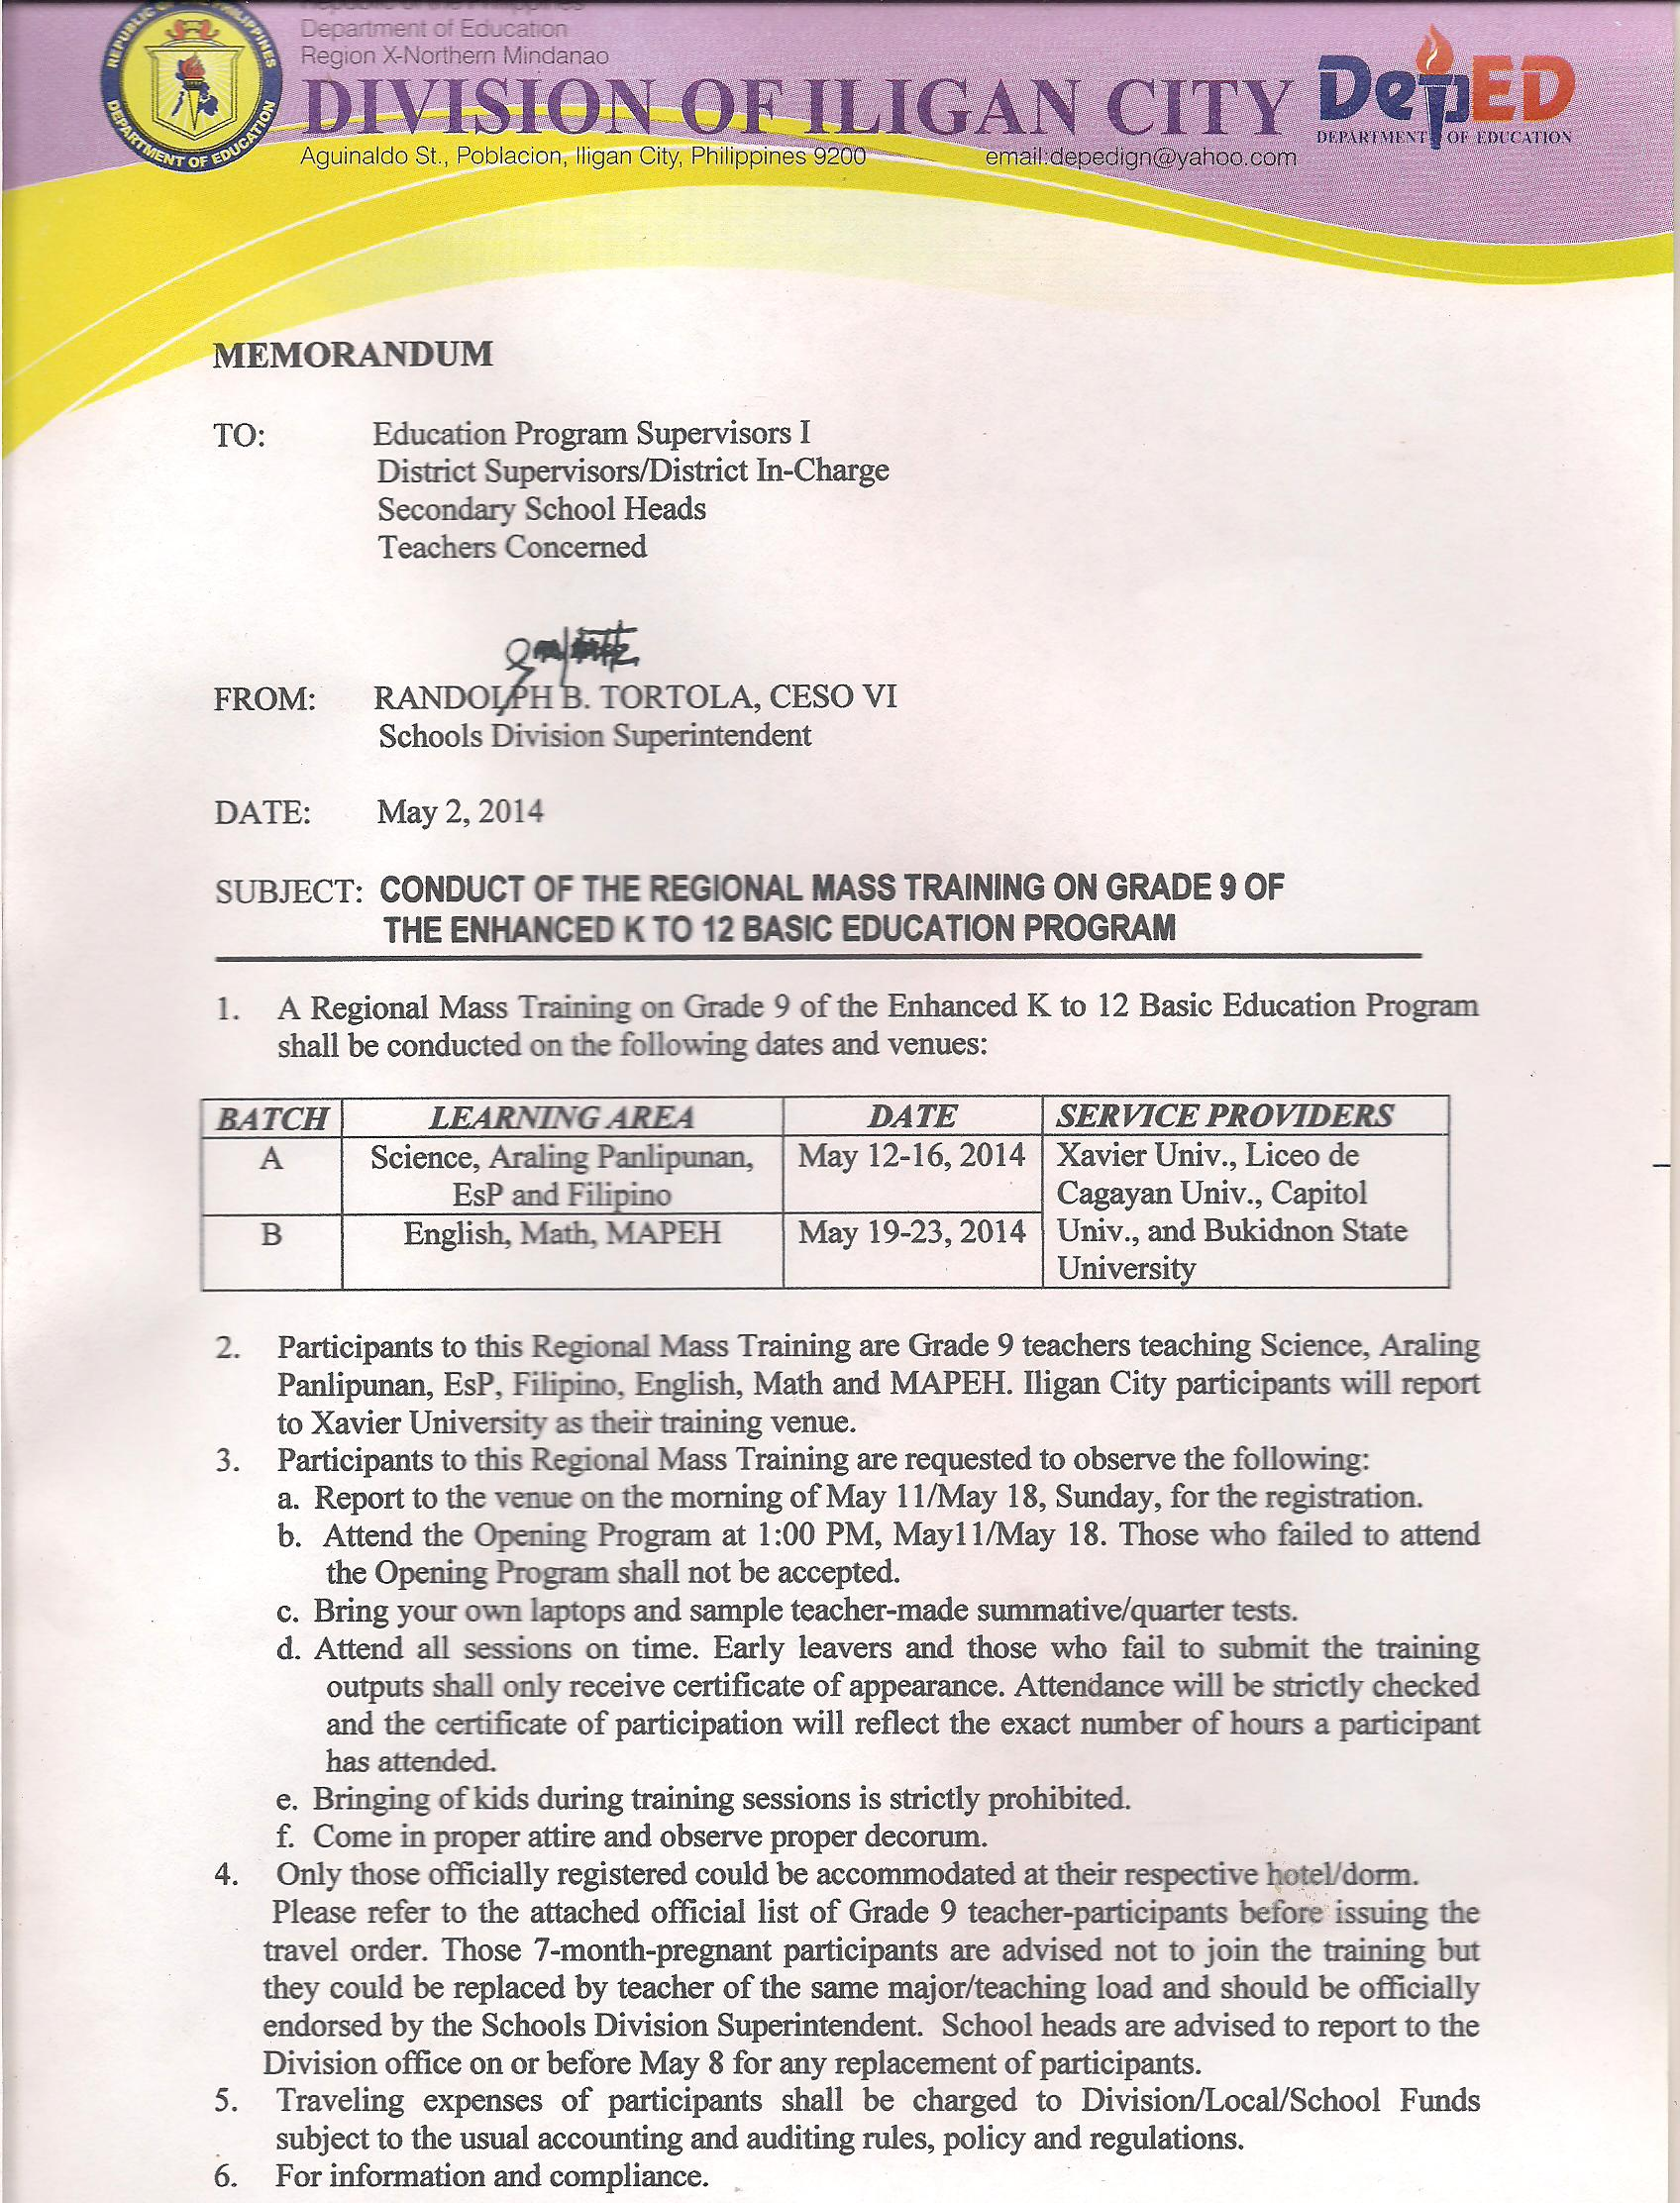 memo may 2 2014 conduct of the regional mass training on grade 9 of the enhanced k to 12 basic education program